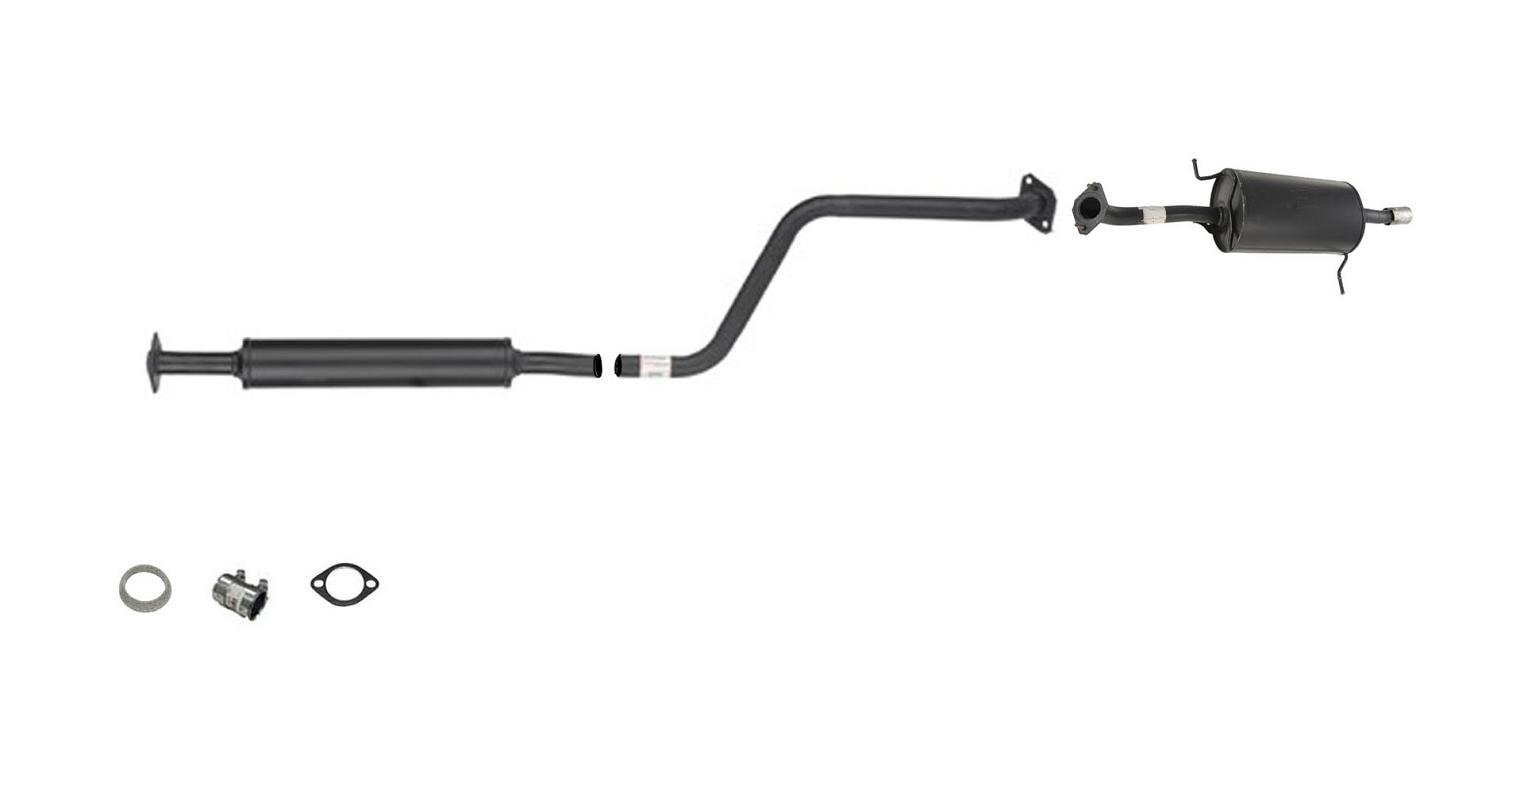 Muffler Exhaust Pipe System With Gasket